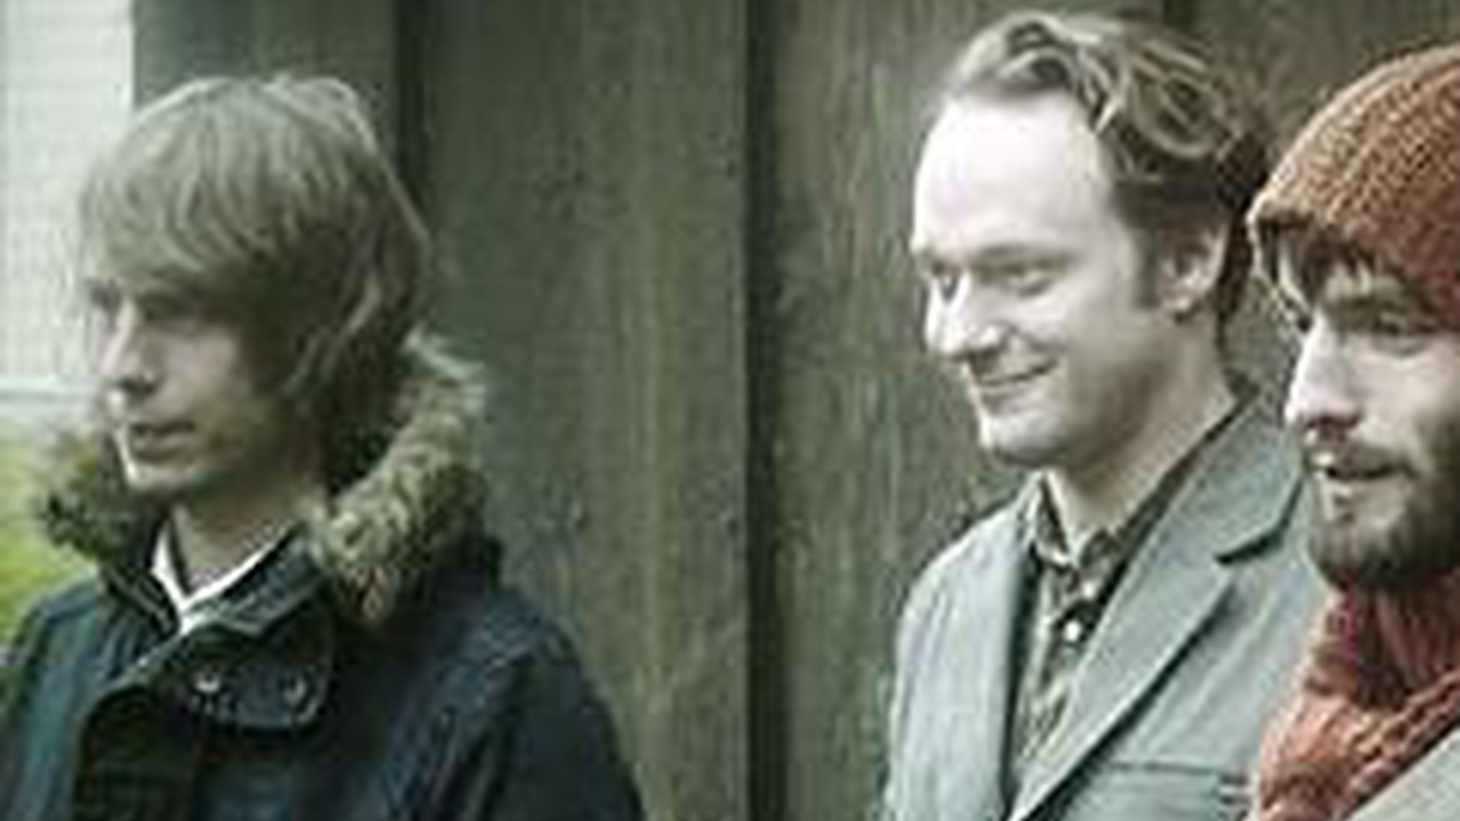 Icelandic collective Sigur Ros have put the finishing touches on their latest, most upbeat release to date...